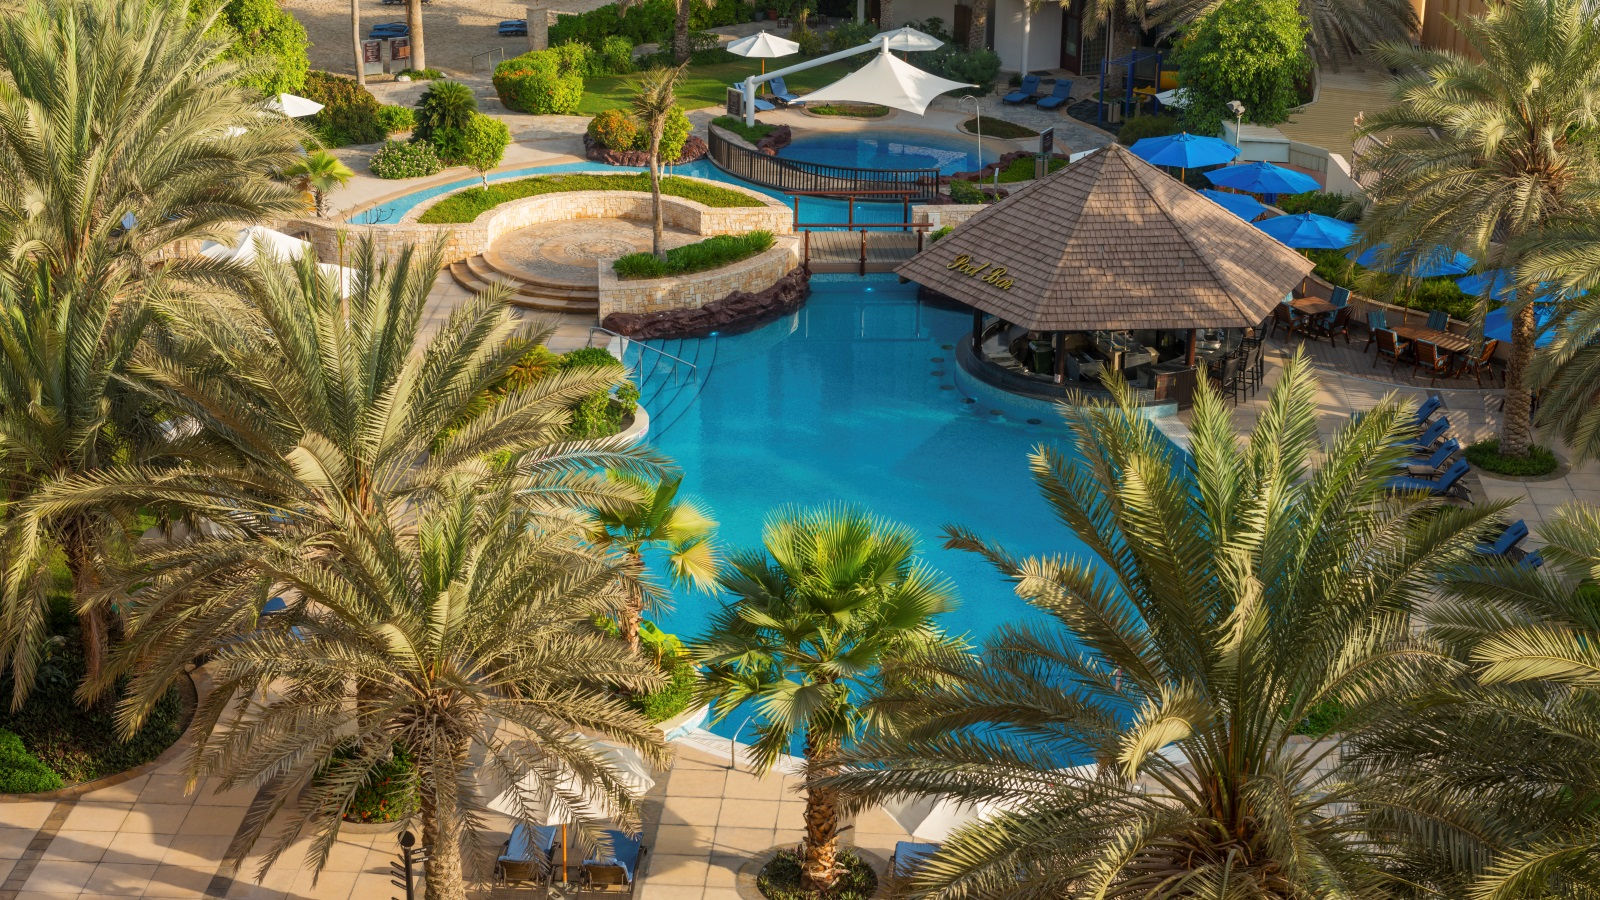 Outdoor pool at Sheraton Abu Dhabit Hotel & Resort